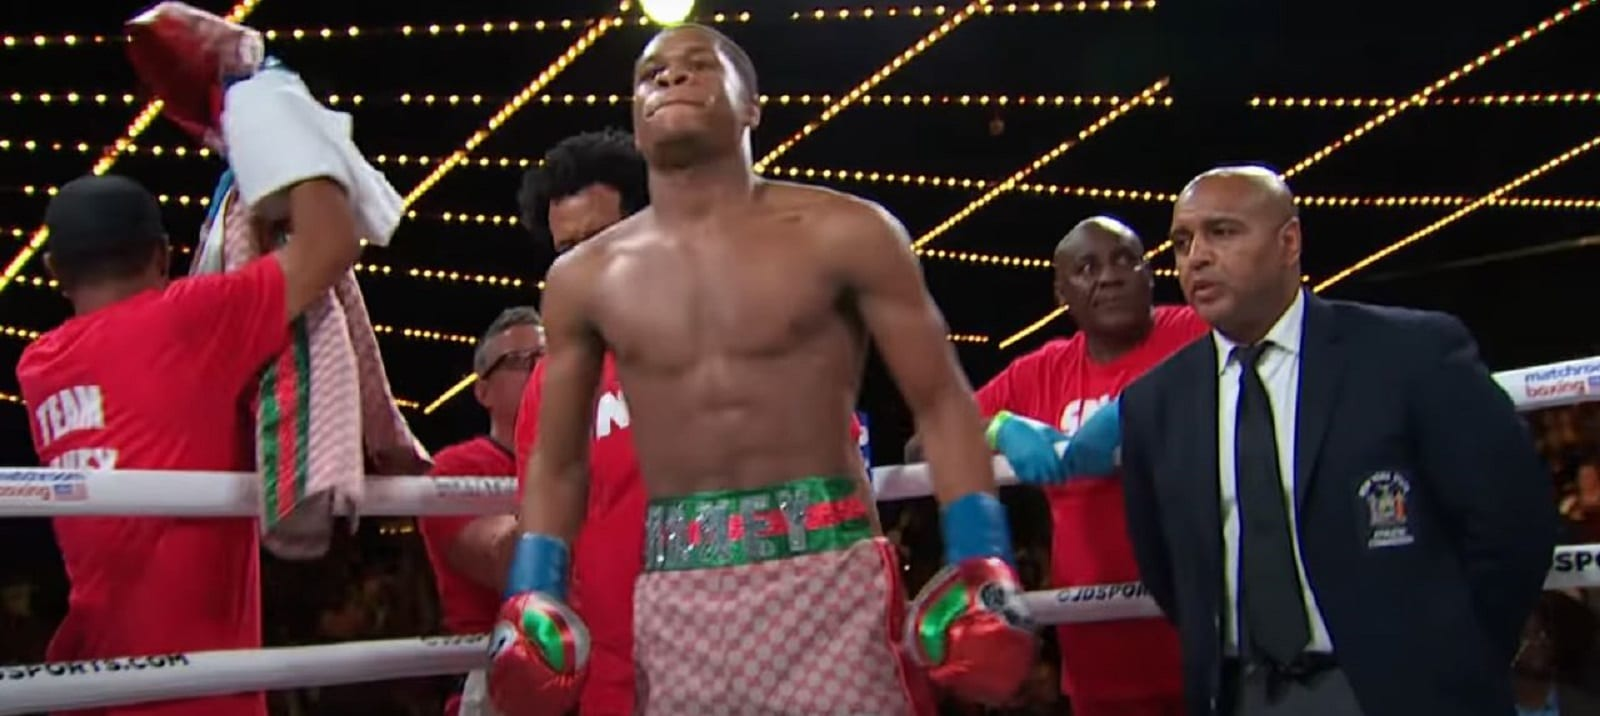 Devin Haney Put Into The First Genuine Test Of His Boxing Career